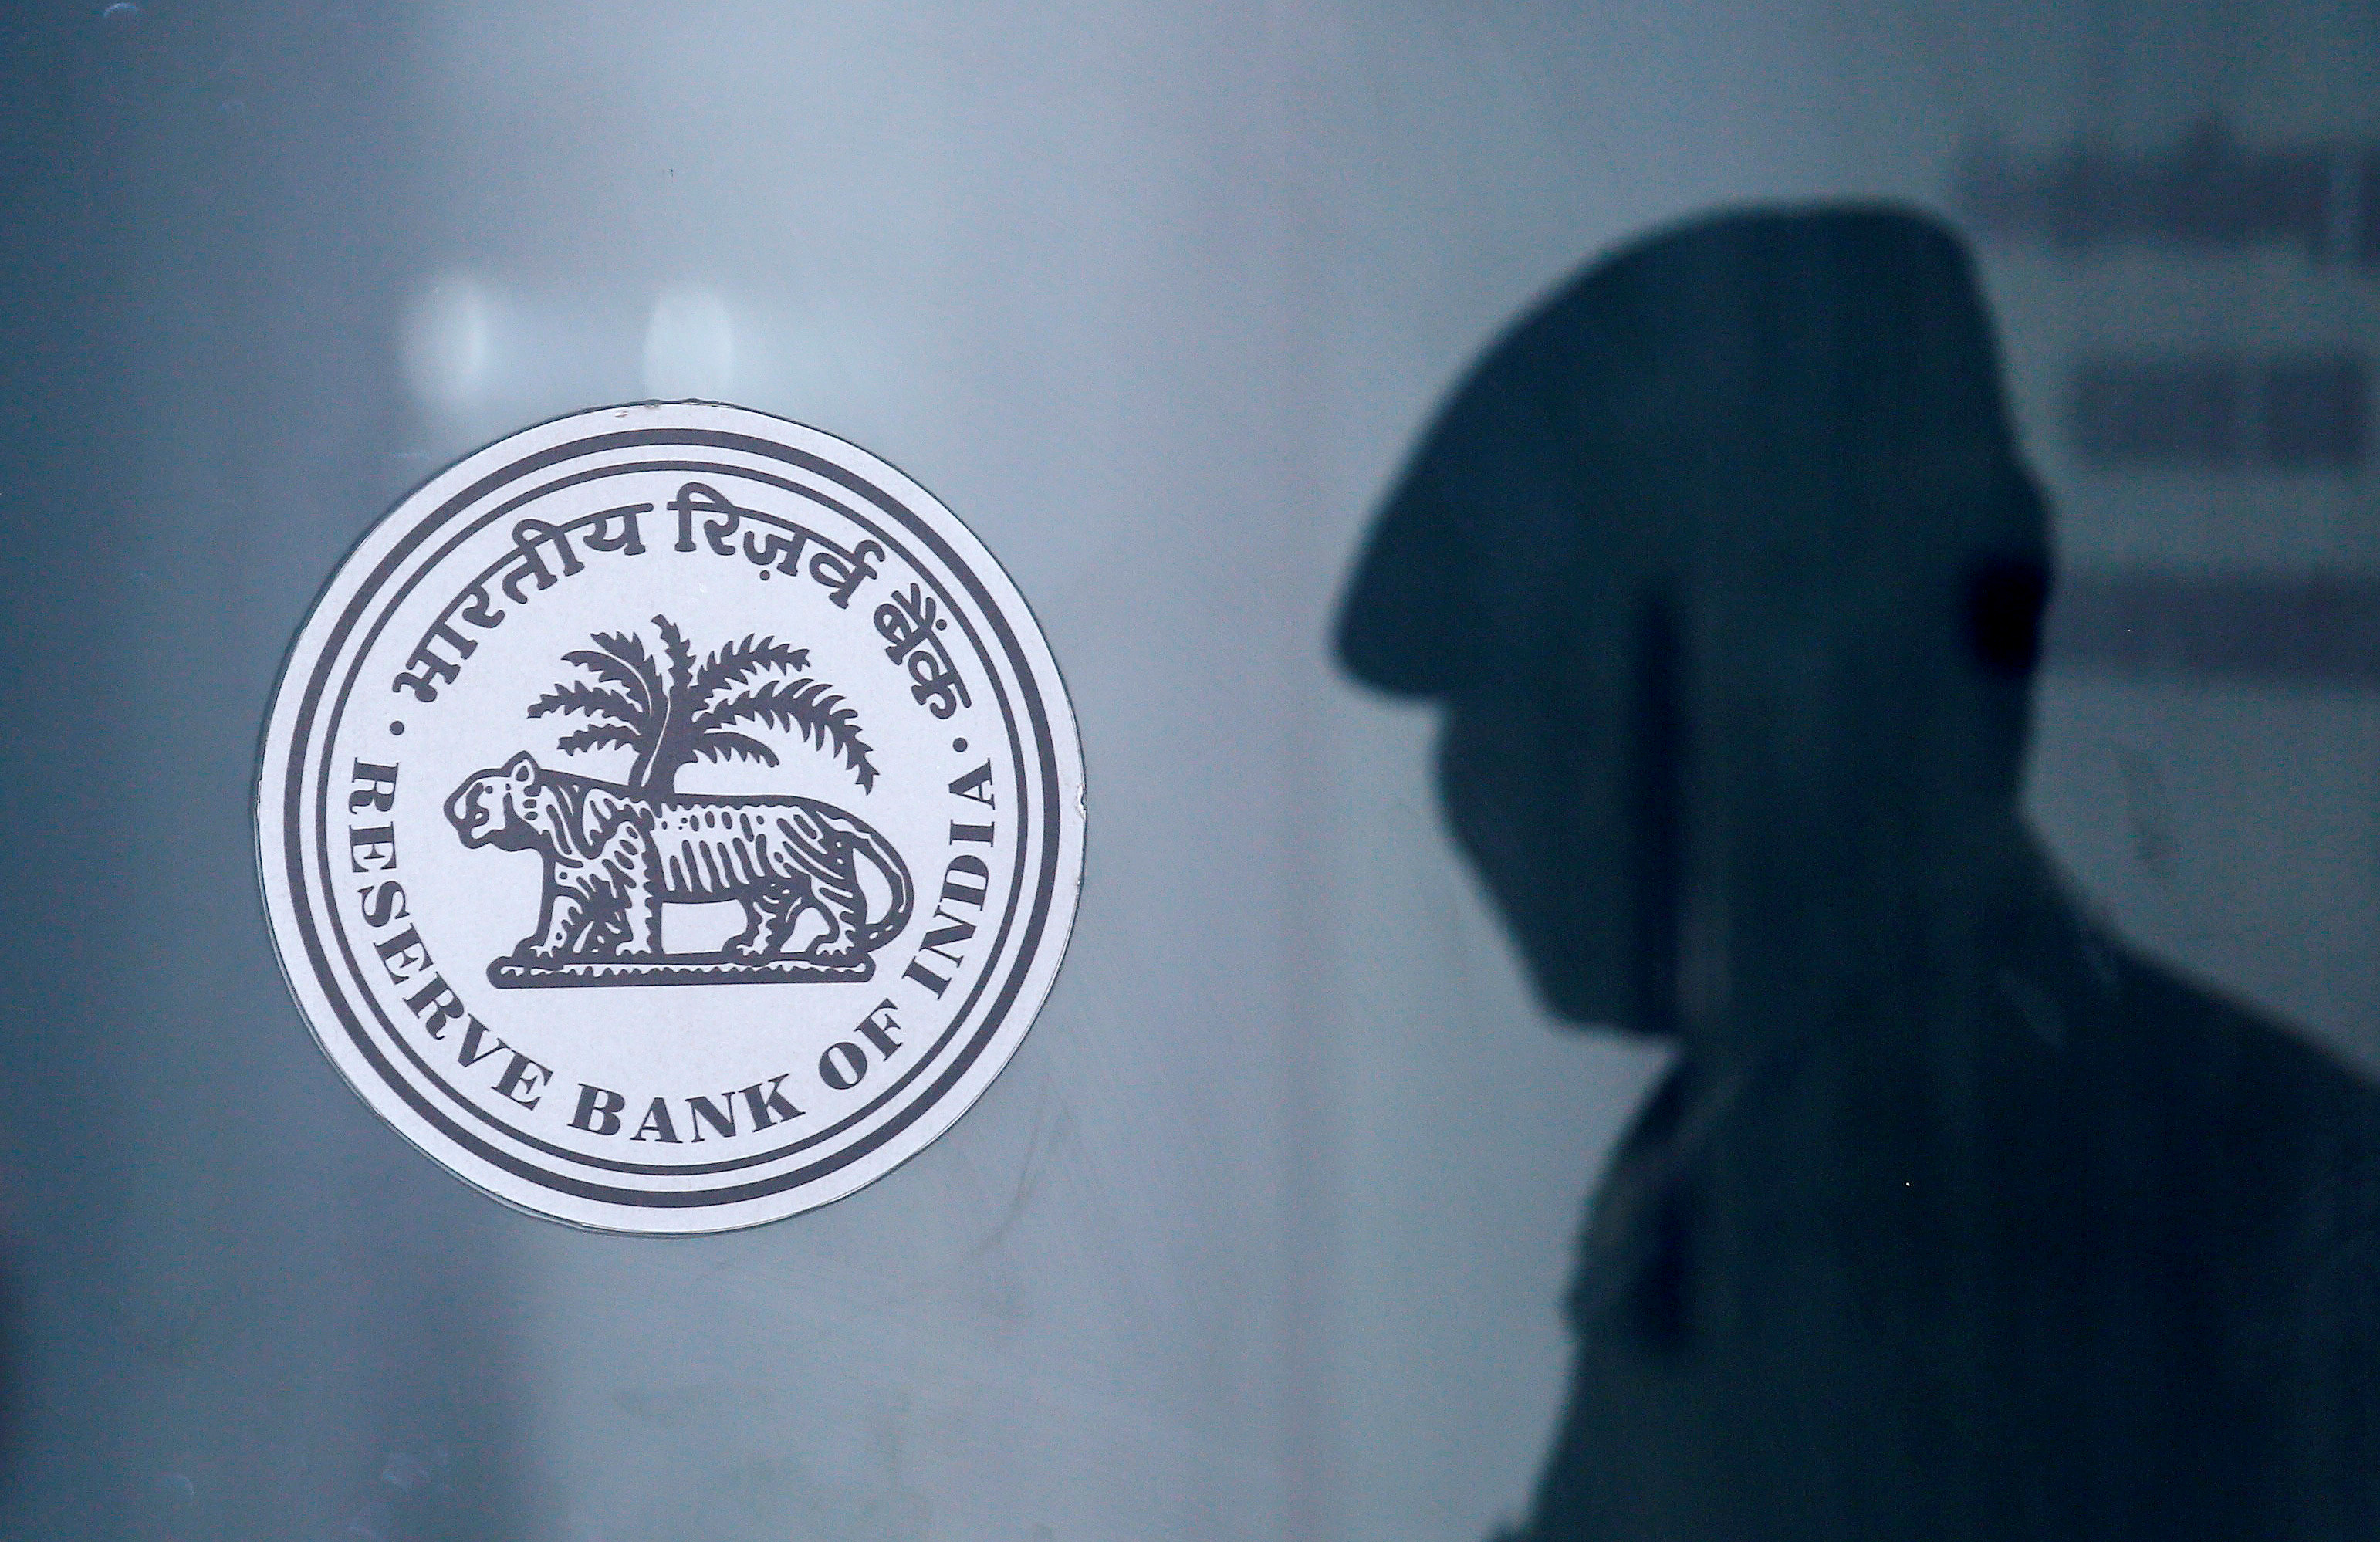 A security guard's reflection is seen next to the logo of the Reserve Bank Of India (RBI) at the RBI headquarters in Mumbai, India, June 6, 2019. REUTERS/Francis Mascarenhas/File Photo